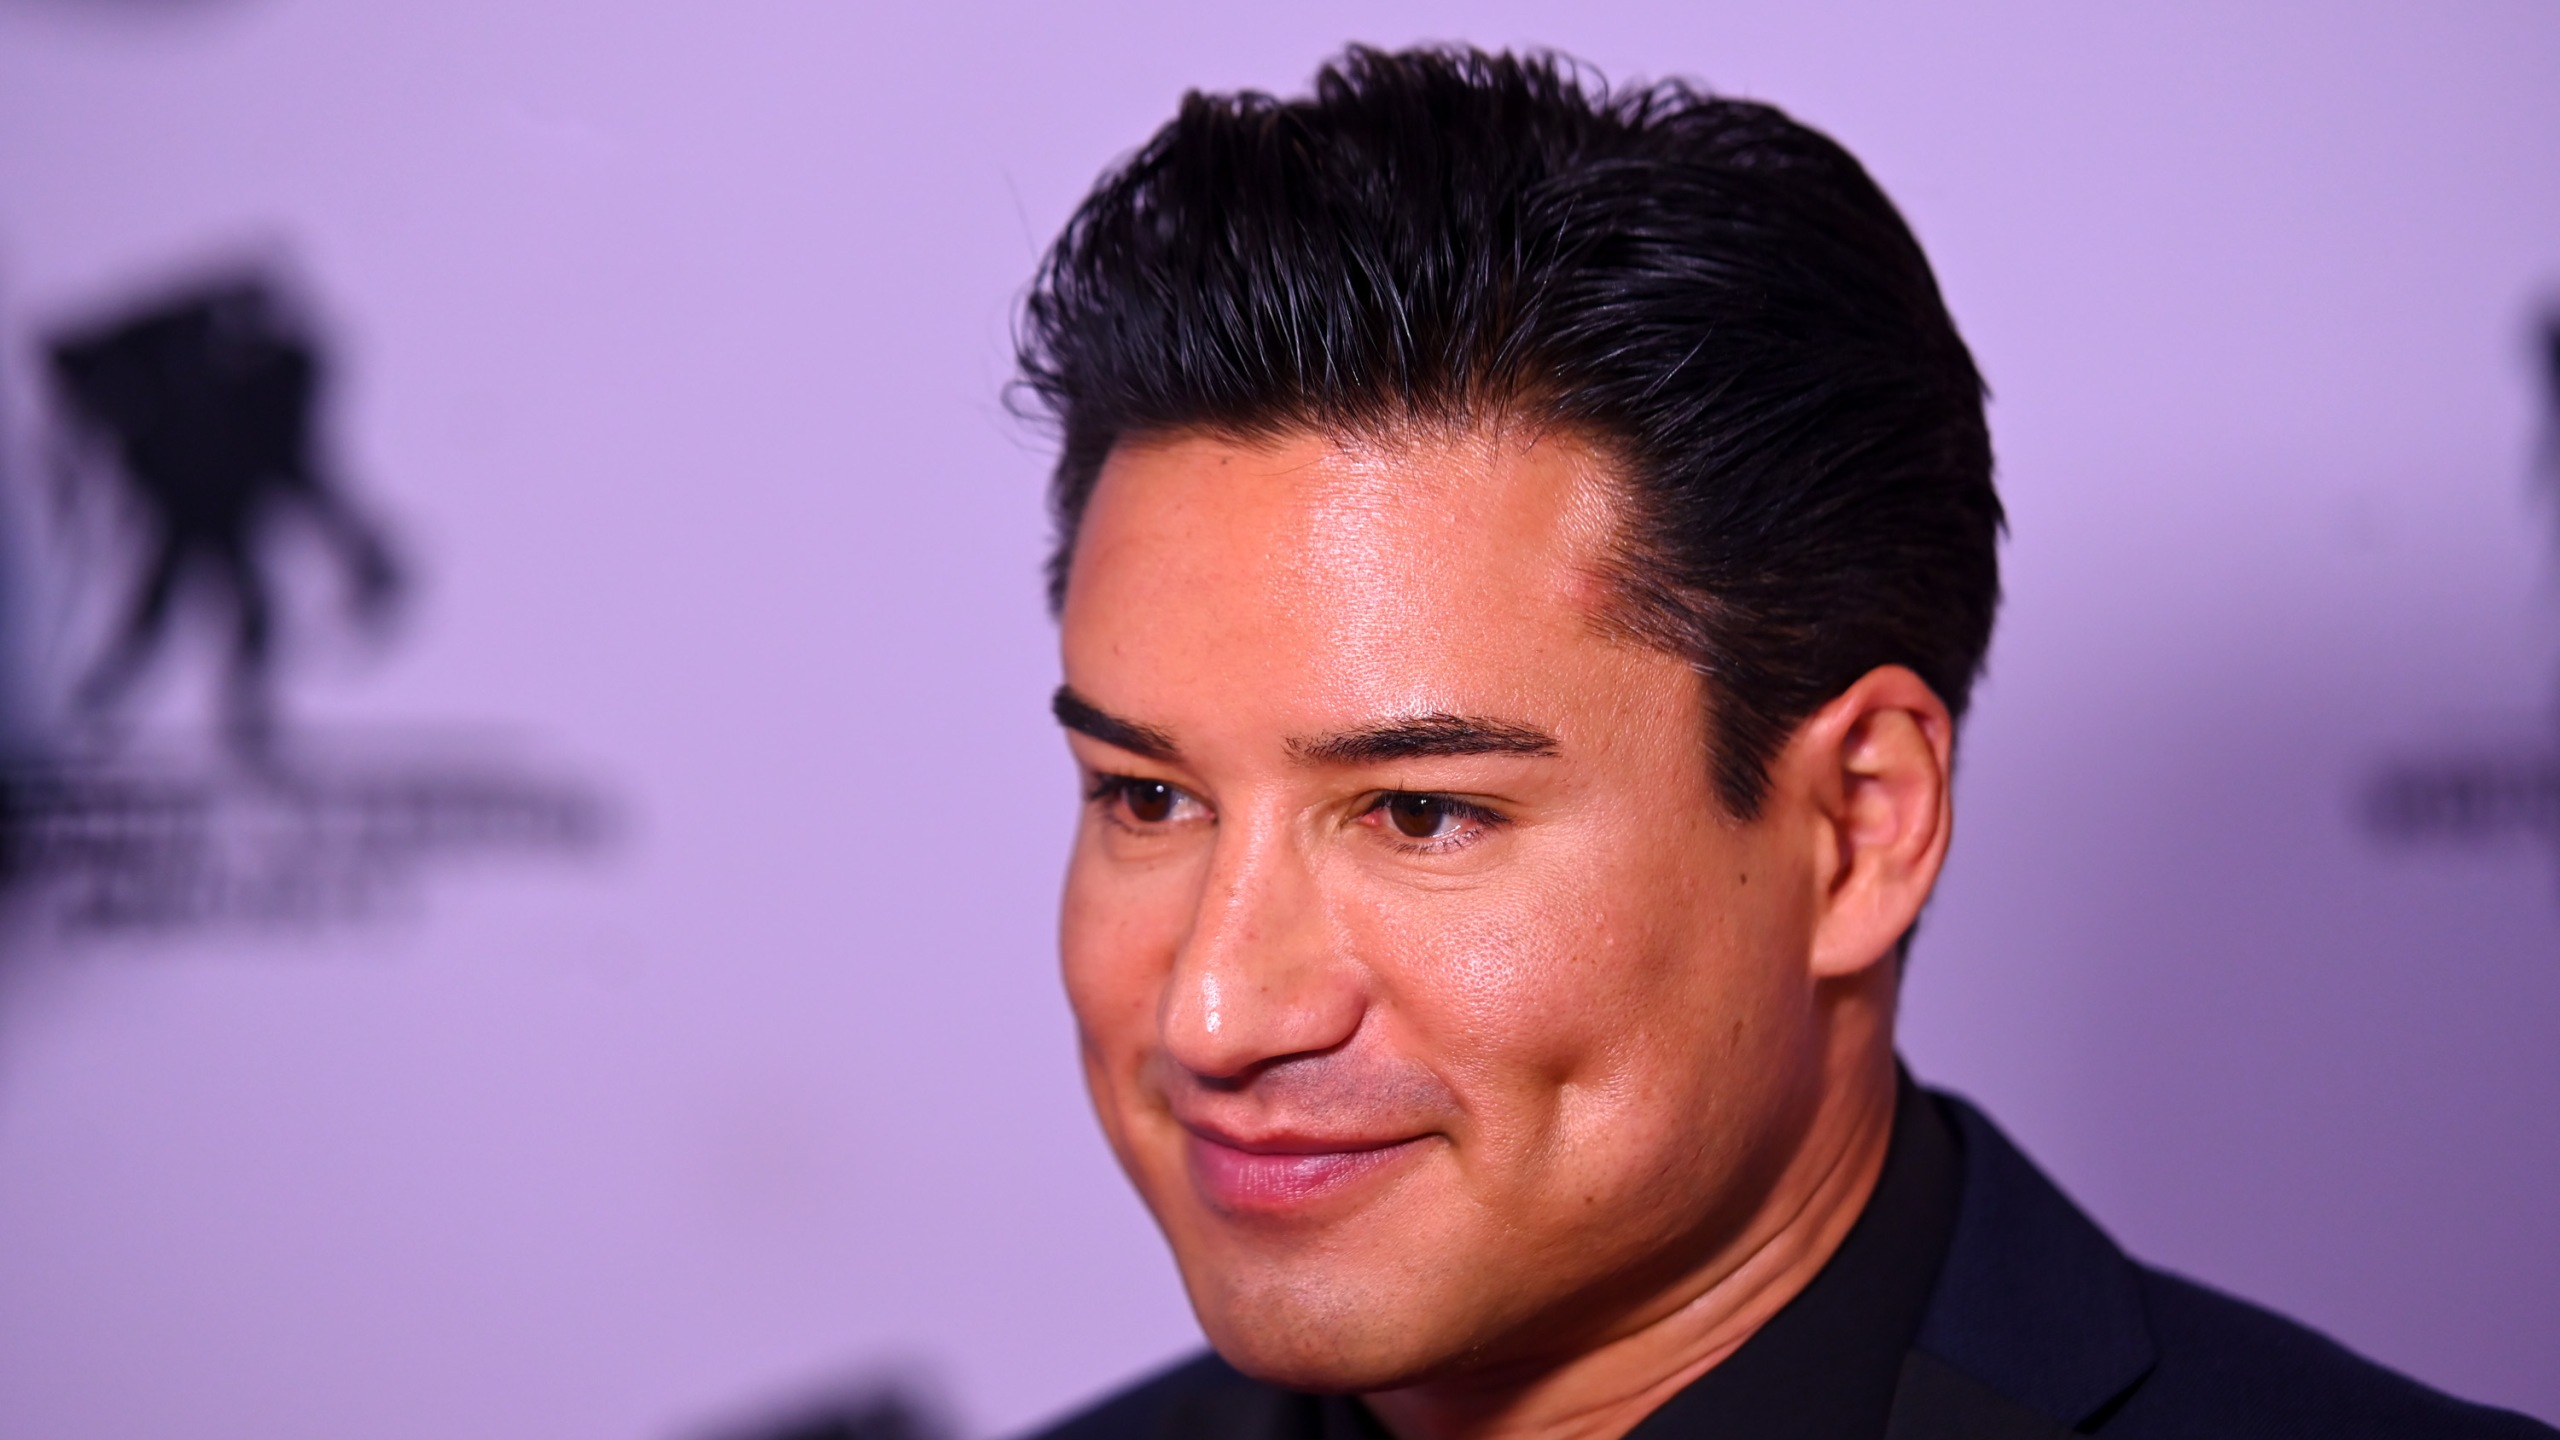 Mario Lopez attends the Wounded Warrior Project Courage Awards and Benefit Dinner at Gotham Hall in New York City on May 16, 2019. (Credit: Nicholas Hunt/Getty Images for Wounded Warrior Project)